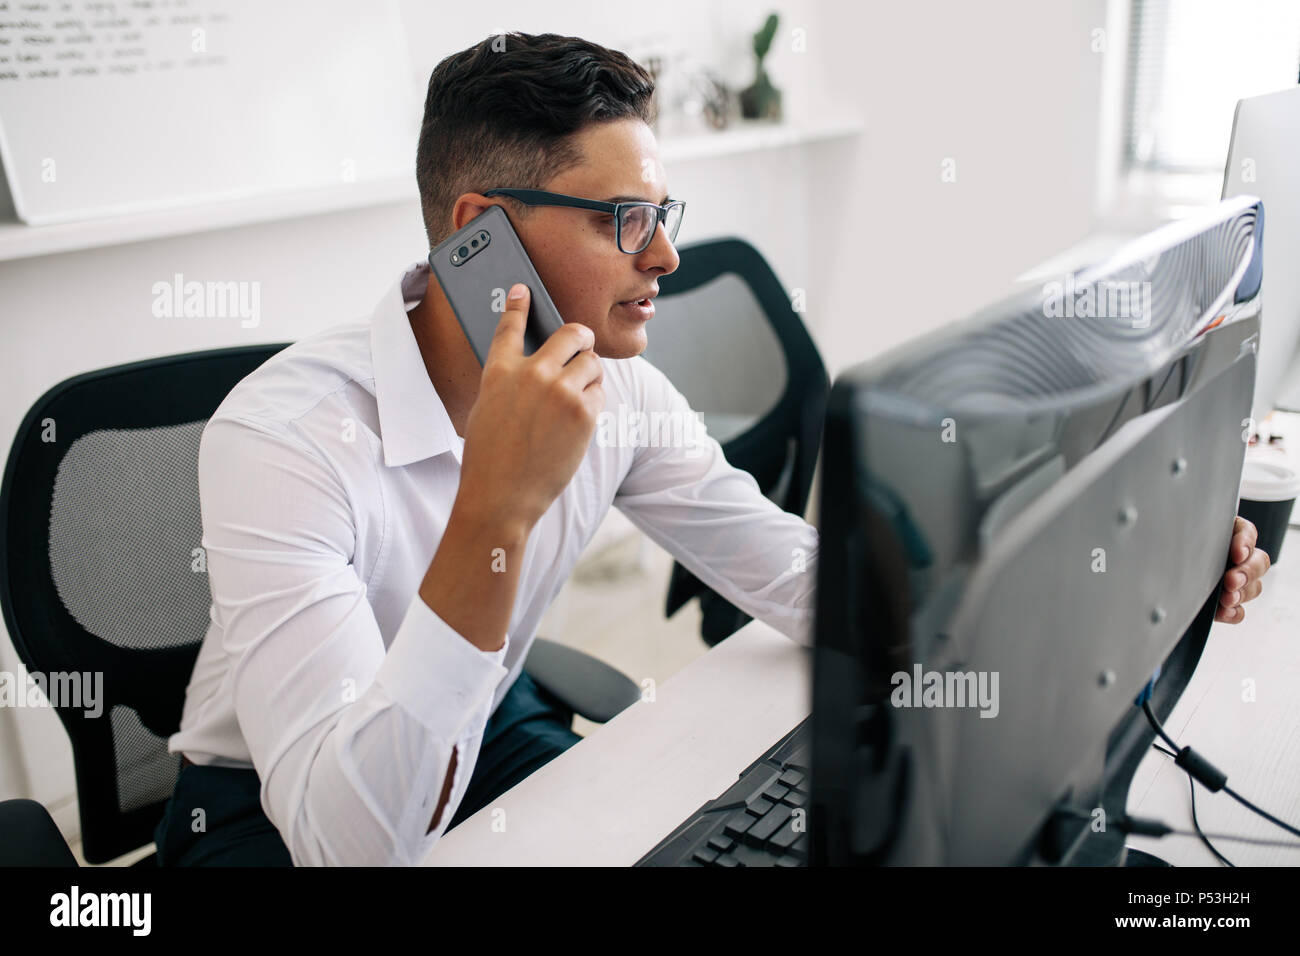 Software developer talking over mobile phone sitting at his office desk with a desktop computer in front. Man wearing spectacles working on desktop co - Stock Image